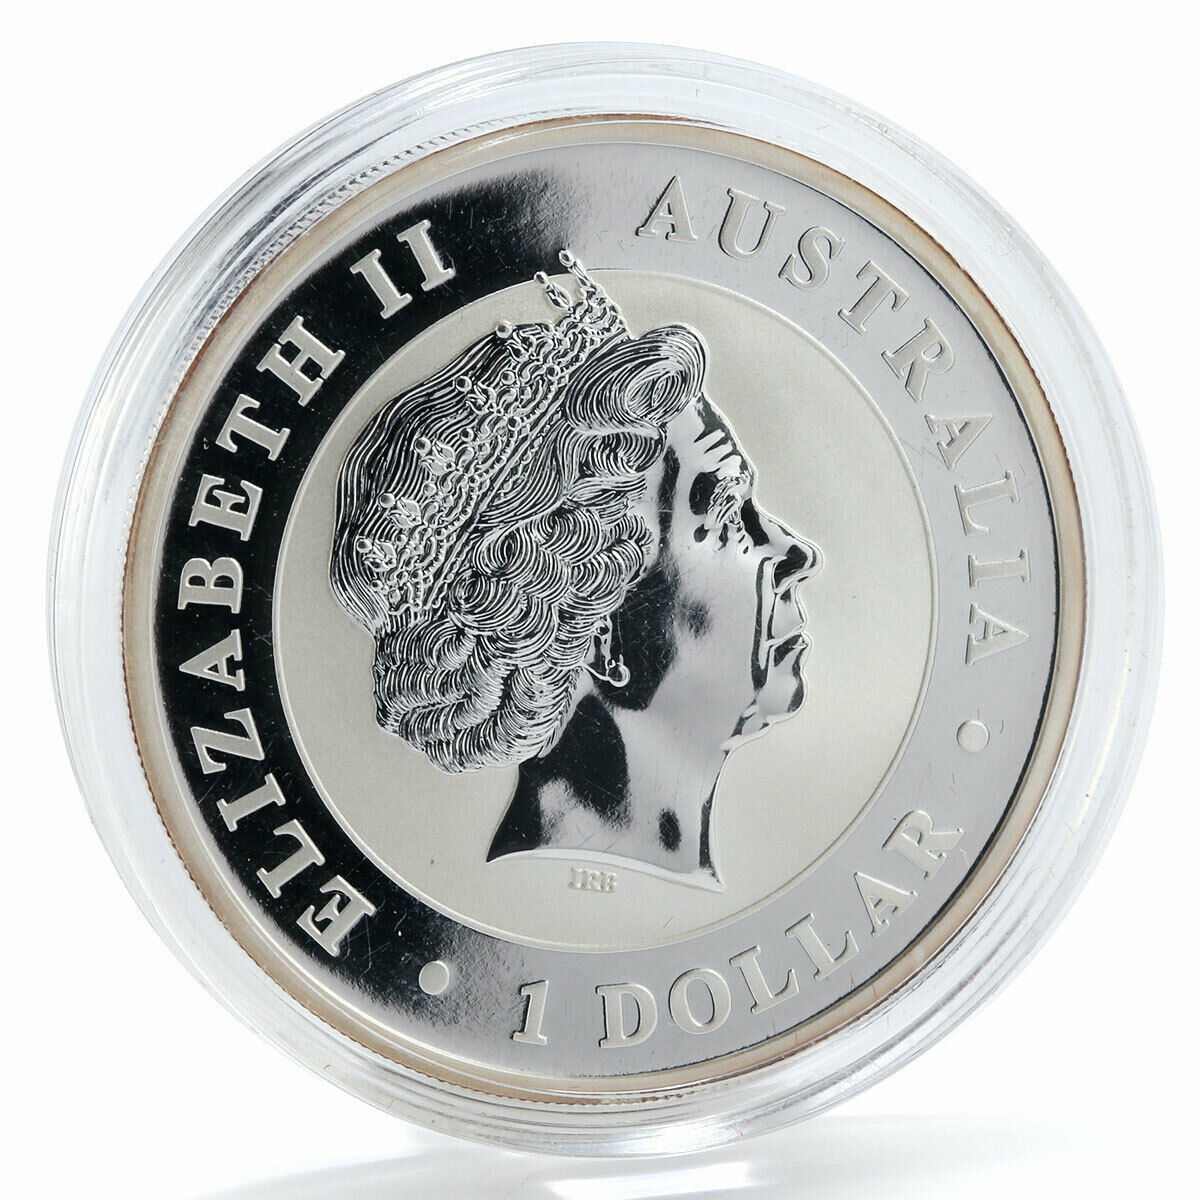 Australia 1 dollar Koala proof silver coin 2011